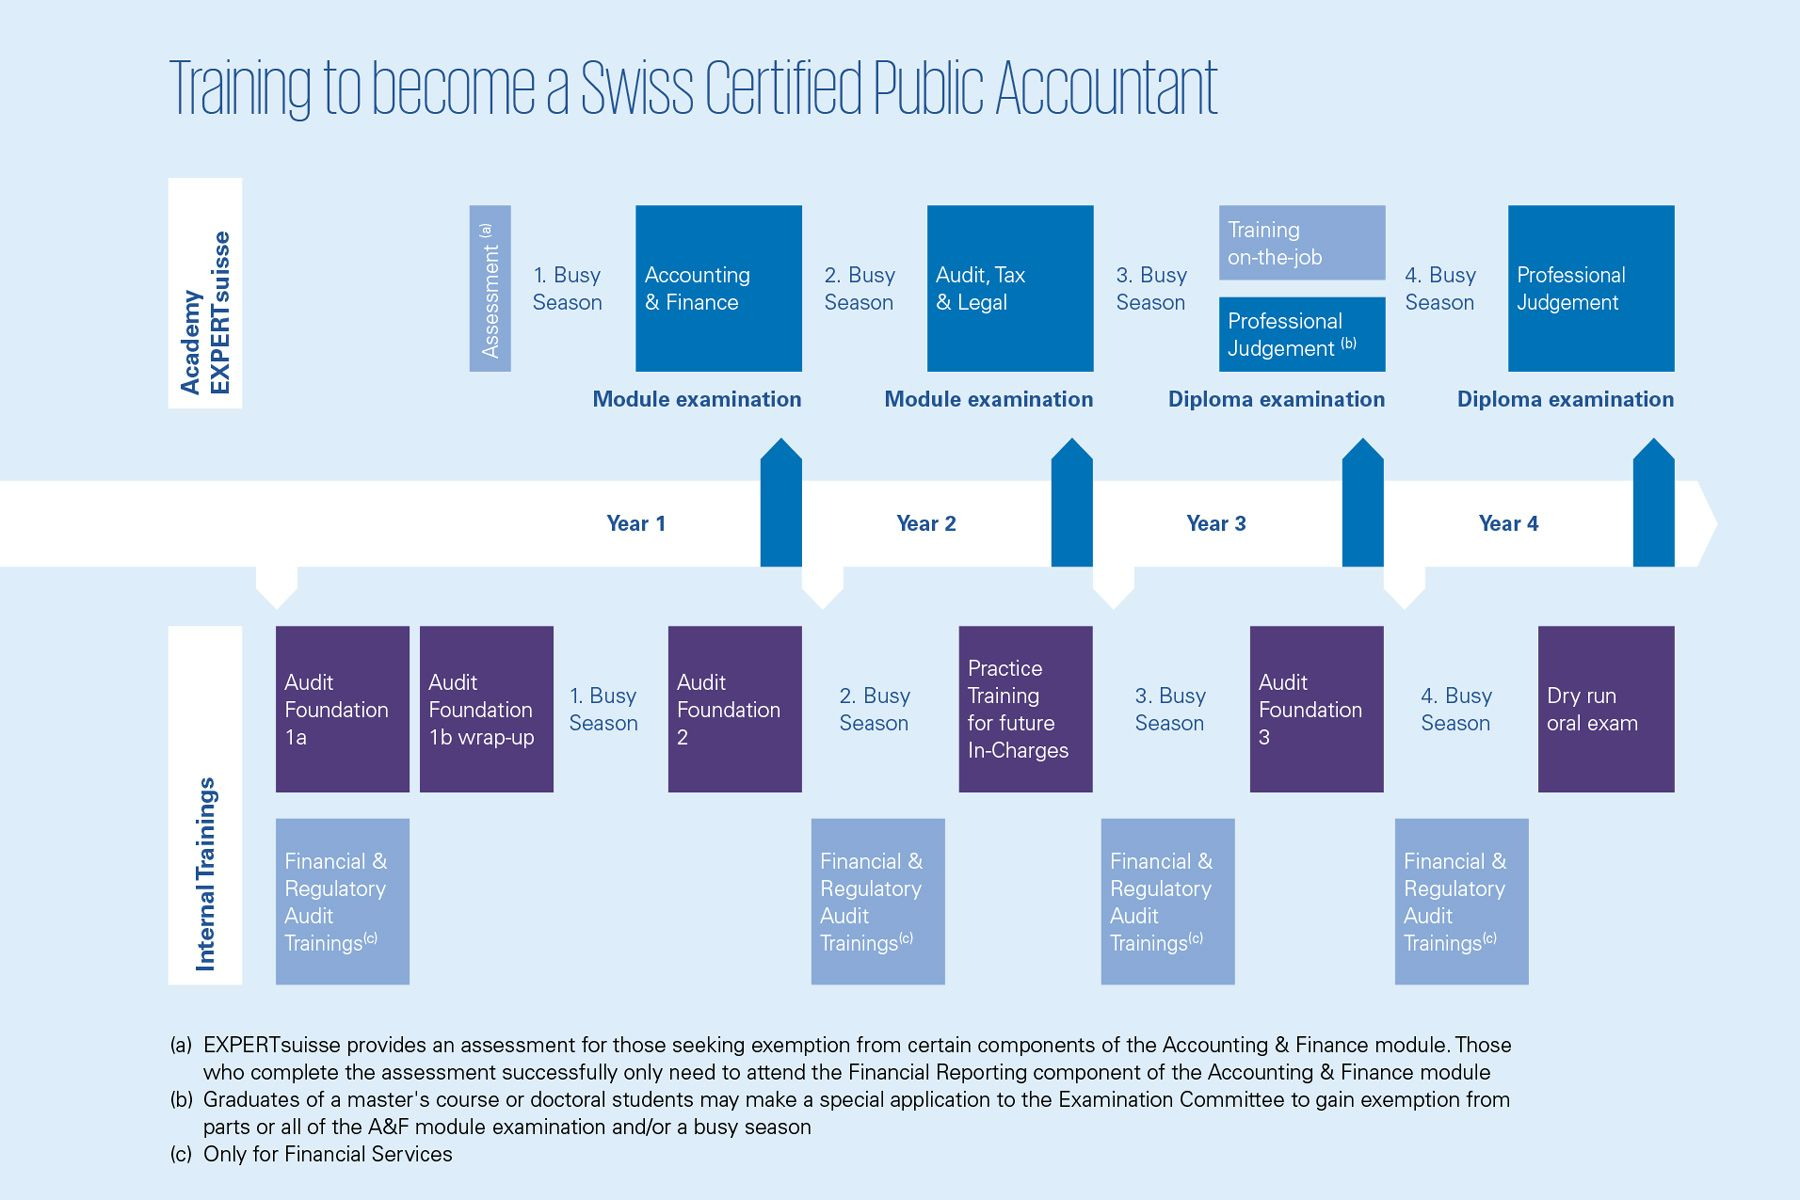 Become a Public Accountant at KPMG